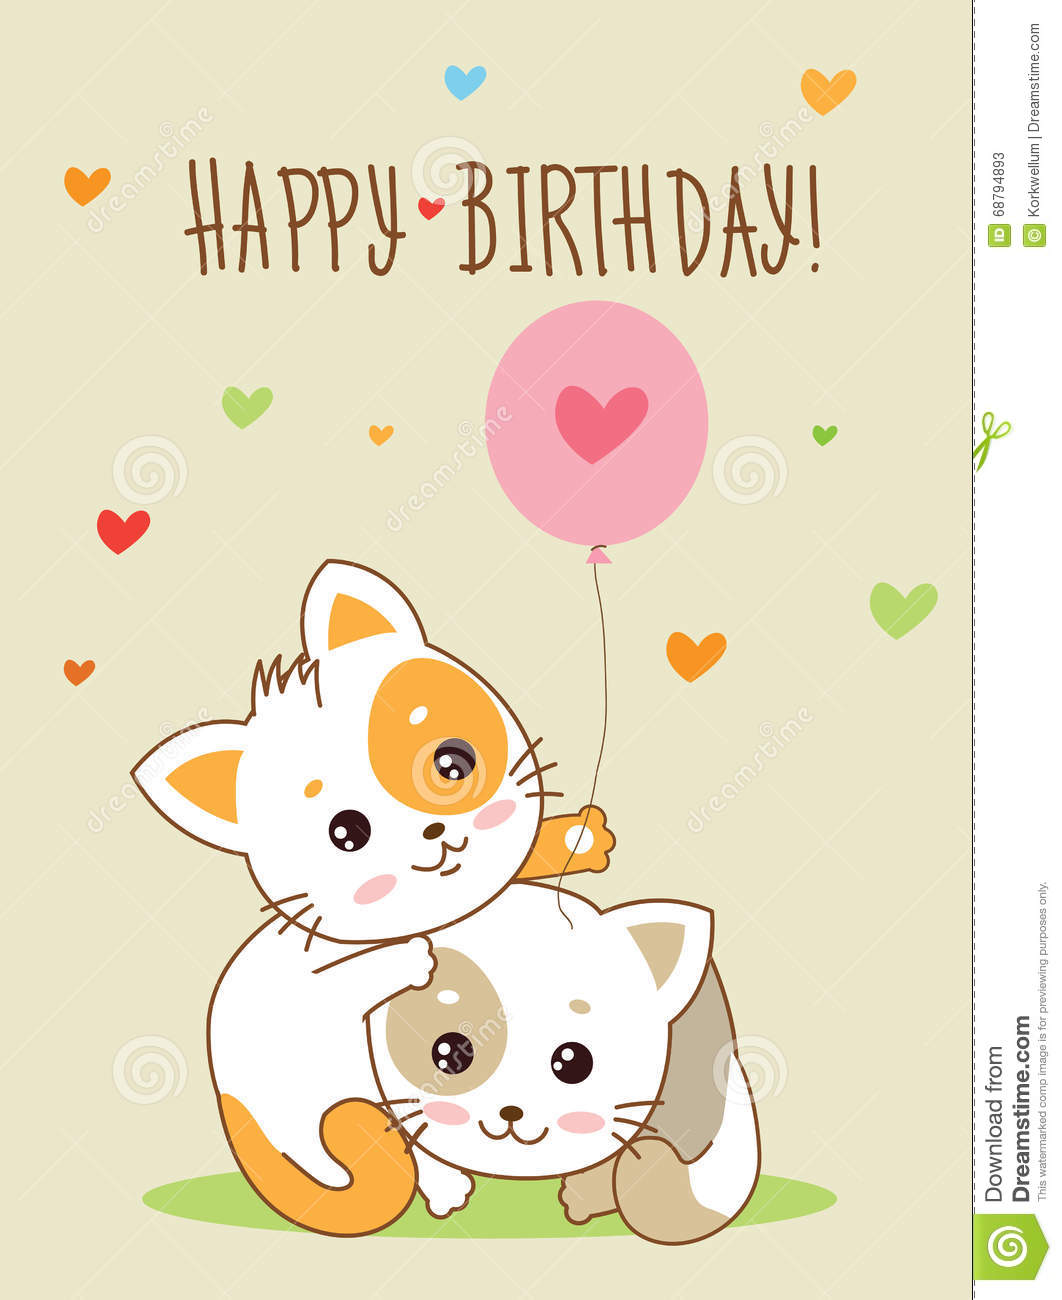 Happy Birthday Card Two Cute Cheerful Kittens With A Balloon And Hand Made Text